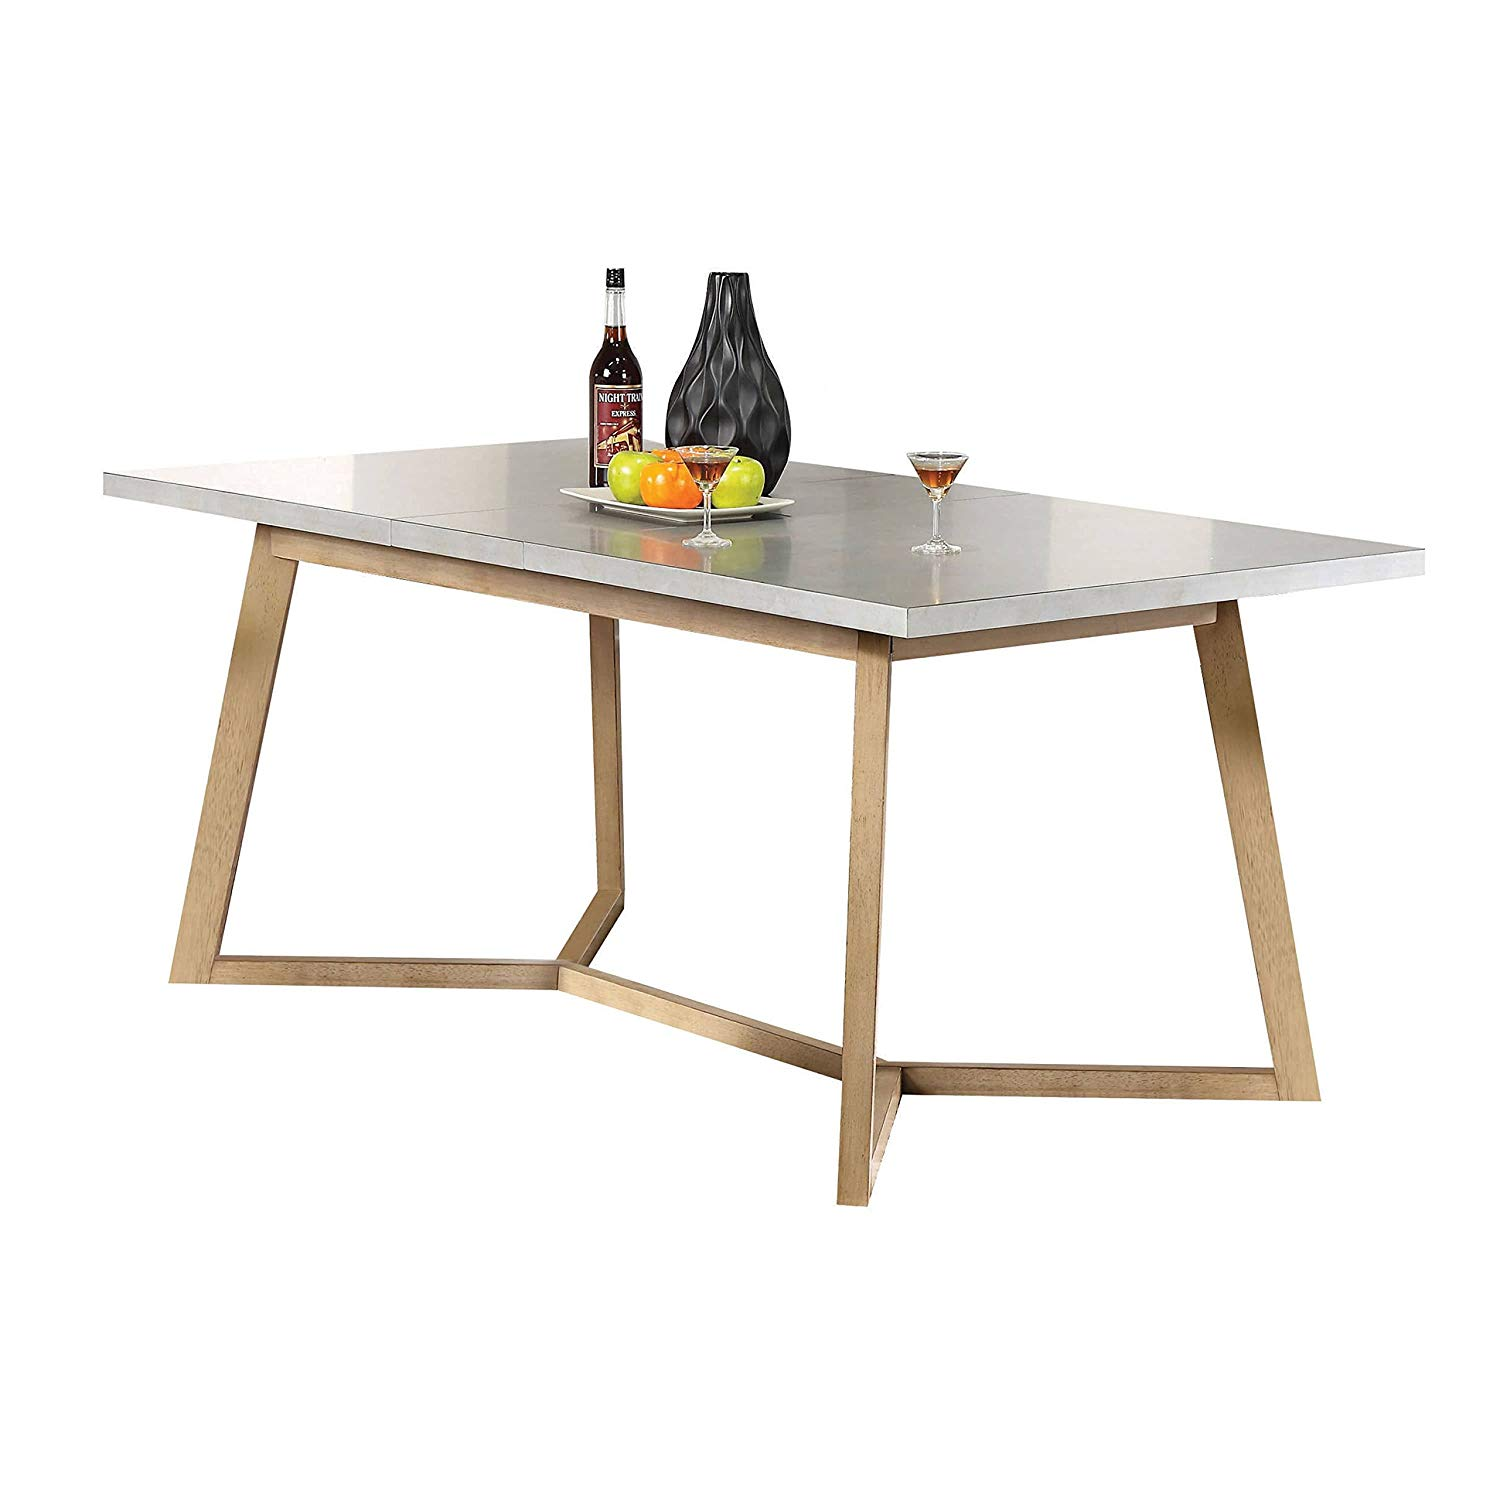 Wood Dining Table with Butterfly Leaf, Durable Construction, Space Saving Design, Rectangular Shape, Functional, Perfect for Kitchen, Dining Room, Beige Color + Expert Guide